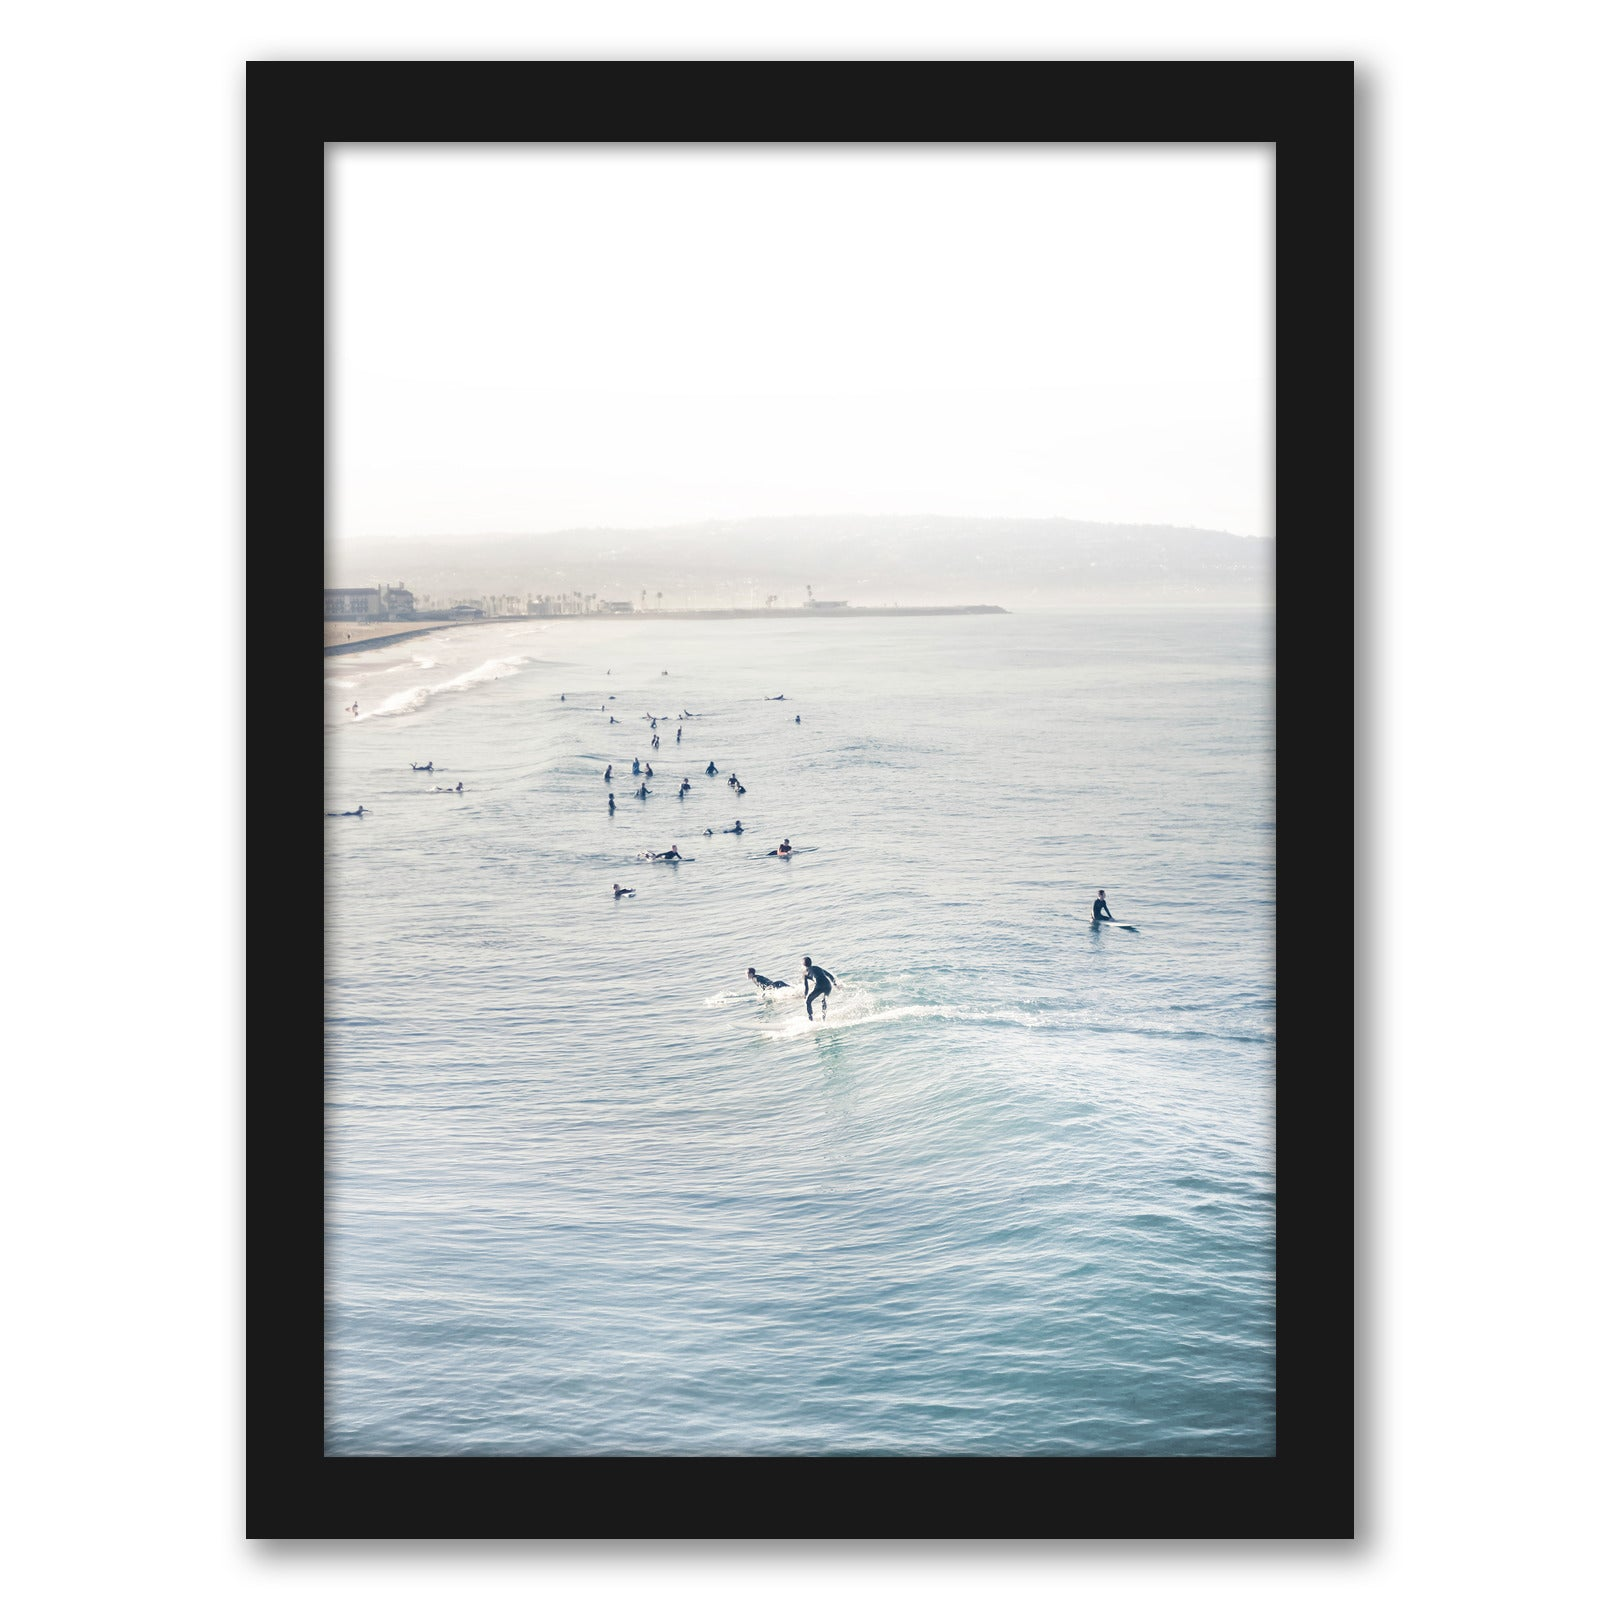 "Surfing Decor by Tanya Shumkina - Black Framed Print, Wall Art, Tanya Shumkina, 8"" x 10"""